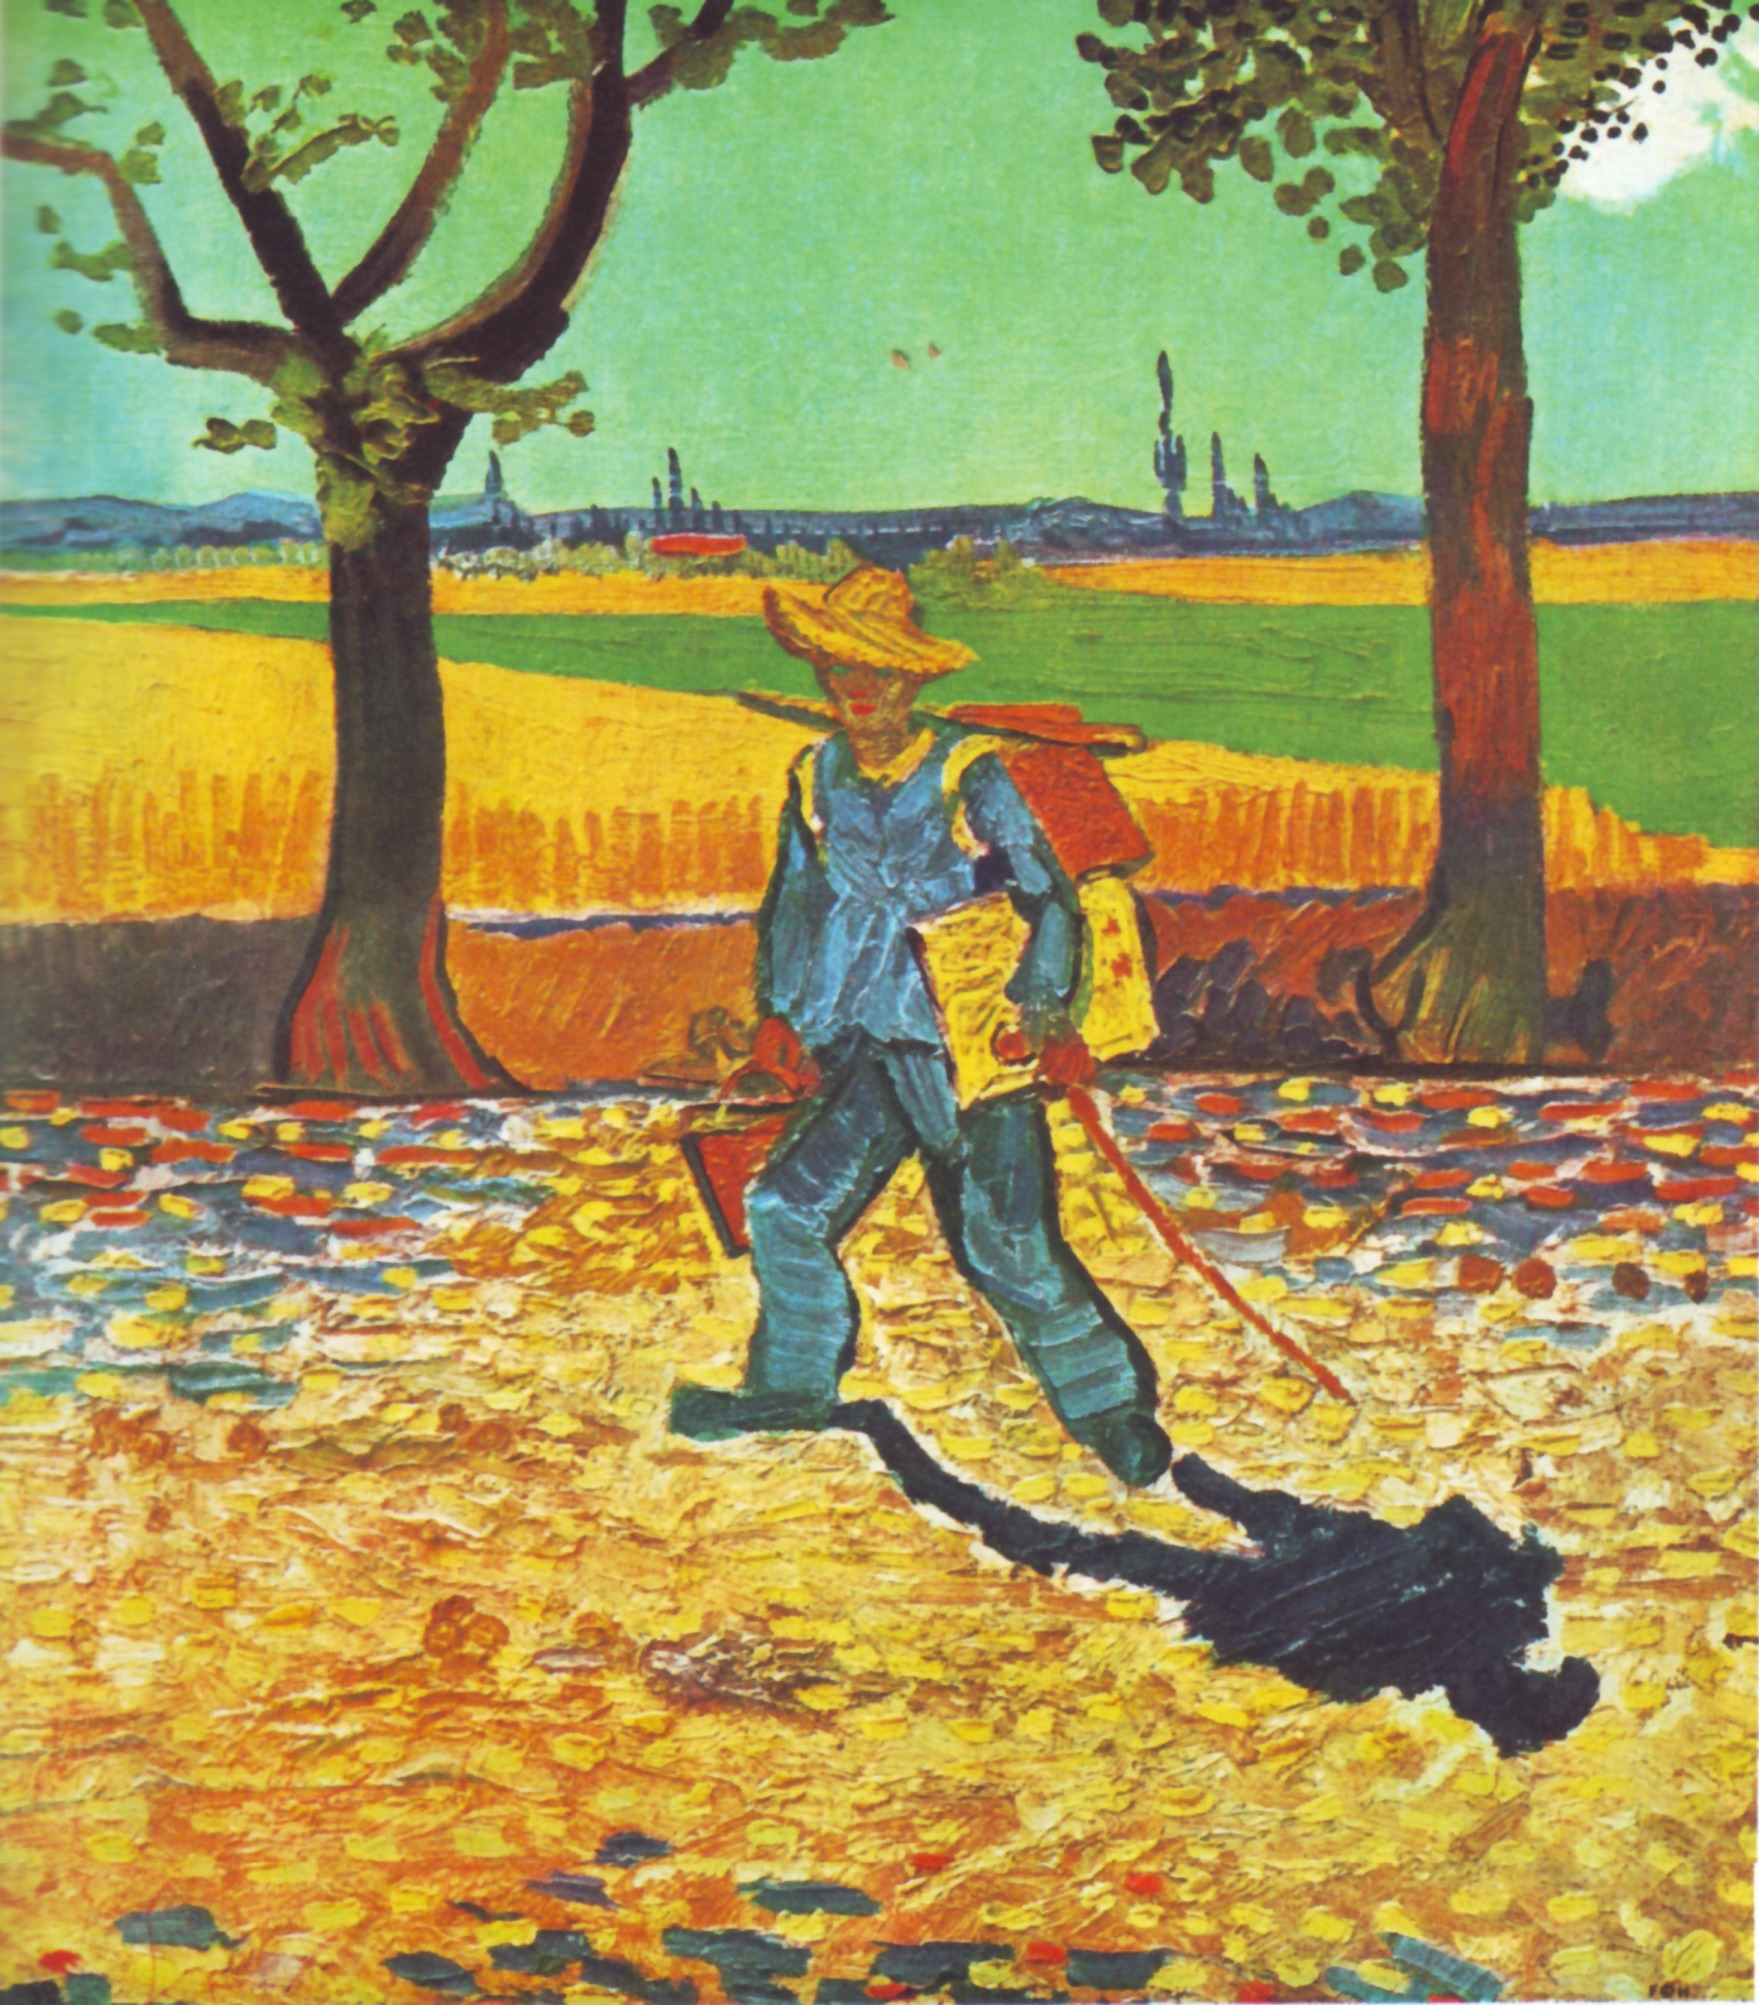 art vincent van gogh Vincent van gogh's love life was a really sad one here we have a look at the list of van gogh lovers, full of unsuccessful romances and rejections i'm really sorry that none of this story will have a happy ending.